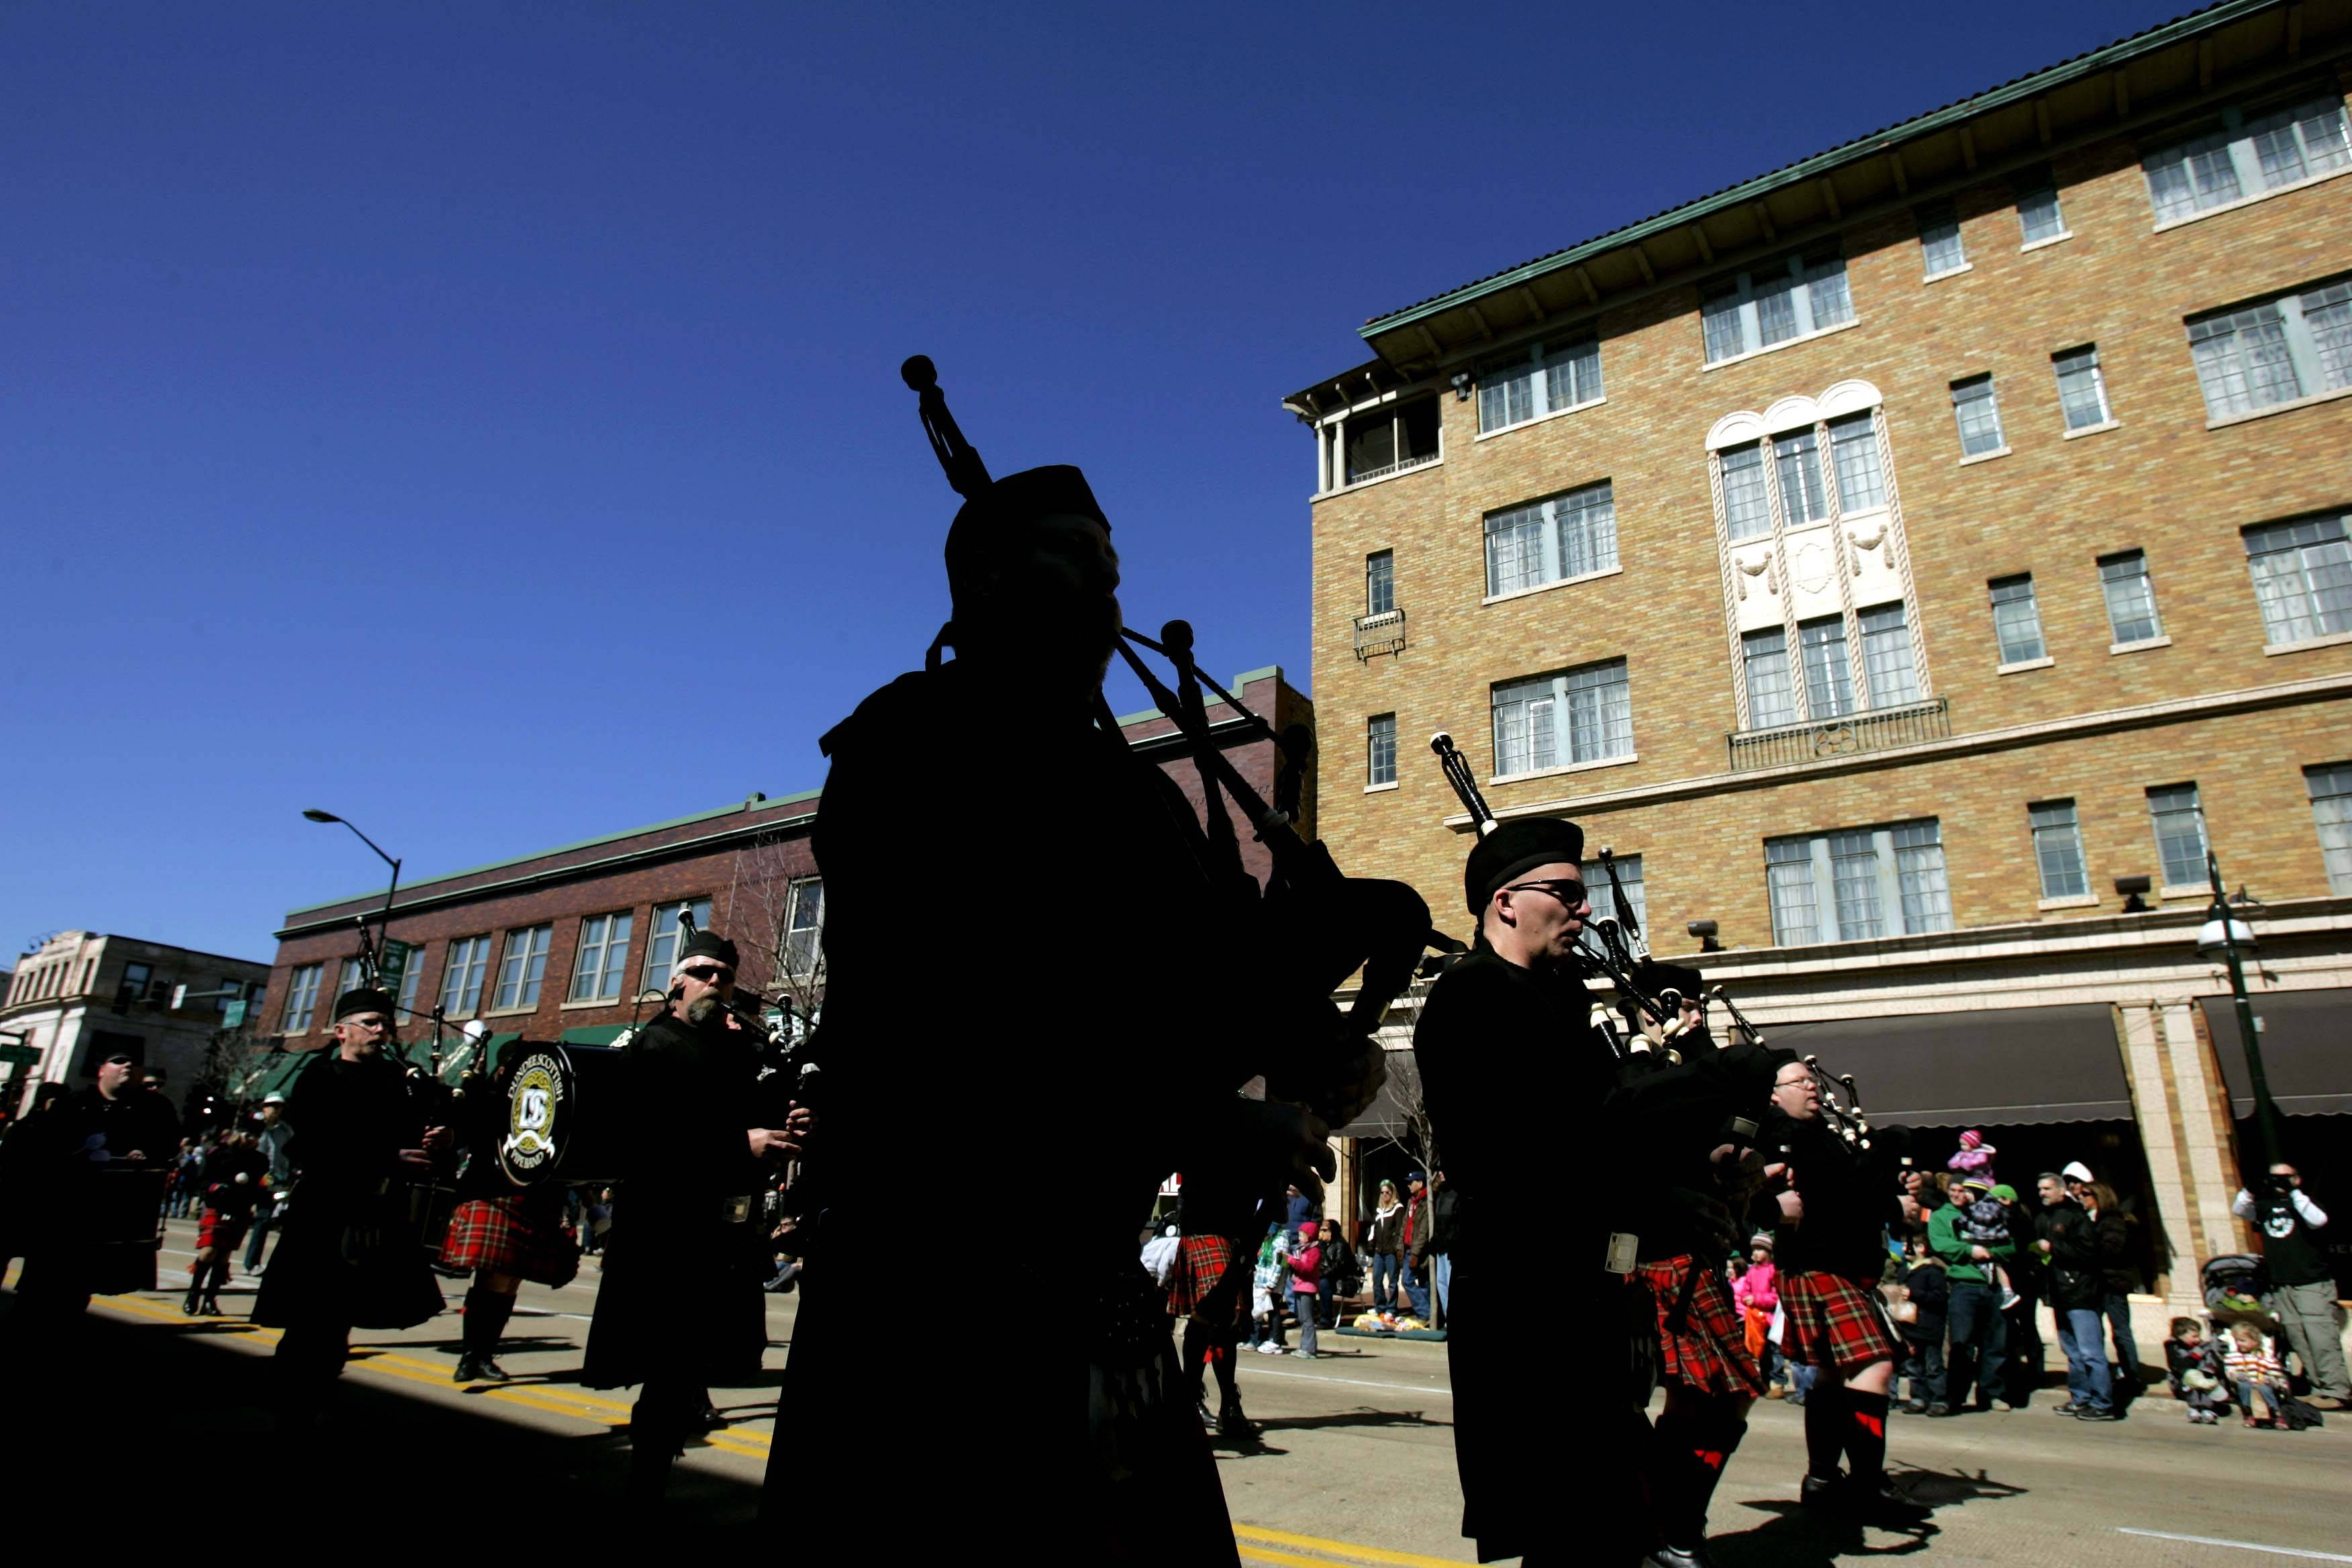 The Dundee Scottish Pipe Band plays as it passes in front of the Hotel Baker during the 2012 St. Patrick's Day parade in downtown St. Charles.